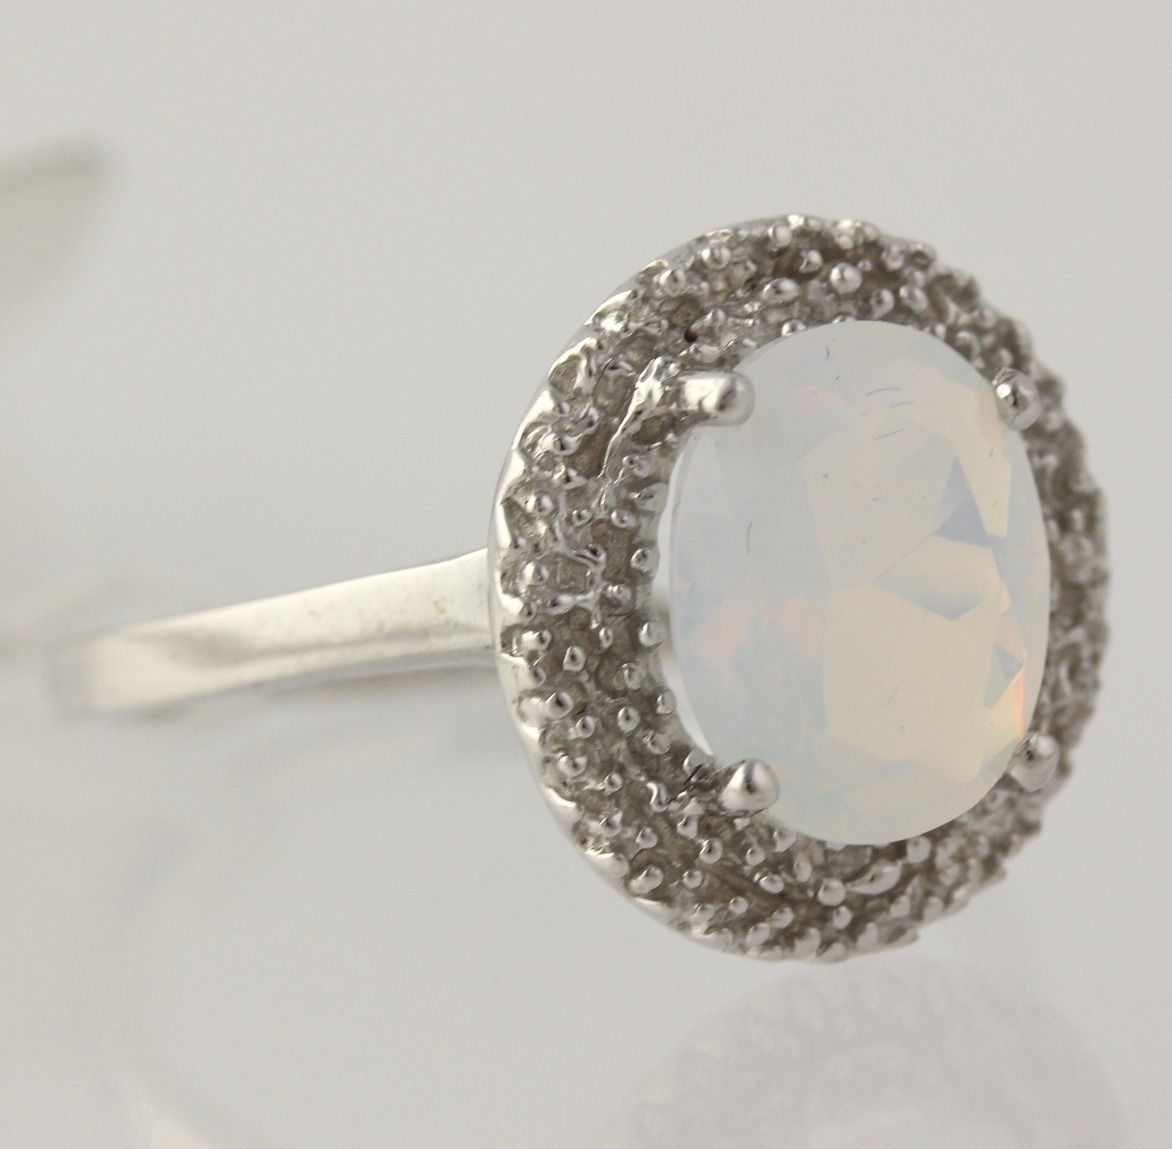 new opalite statement ring 925 sterling silver band. Black Bedroom Furniture Sets. Home Design Ideas